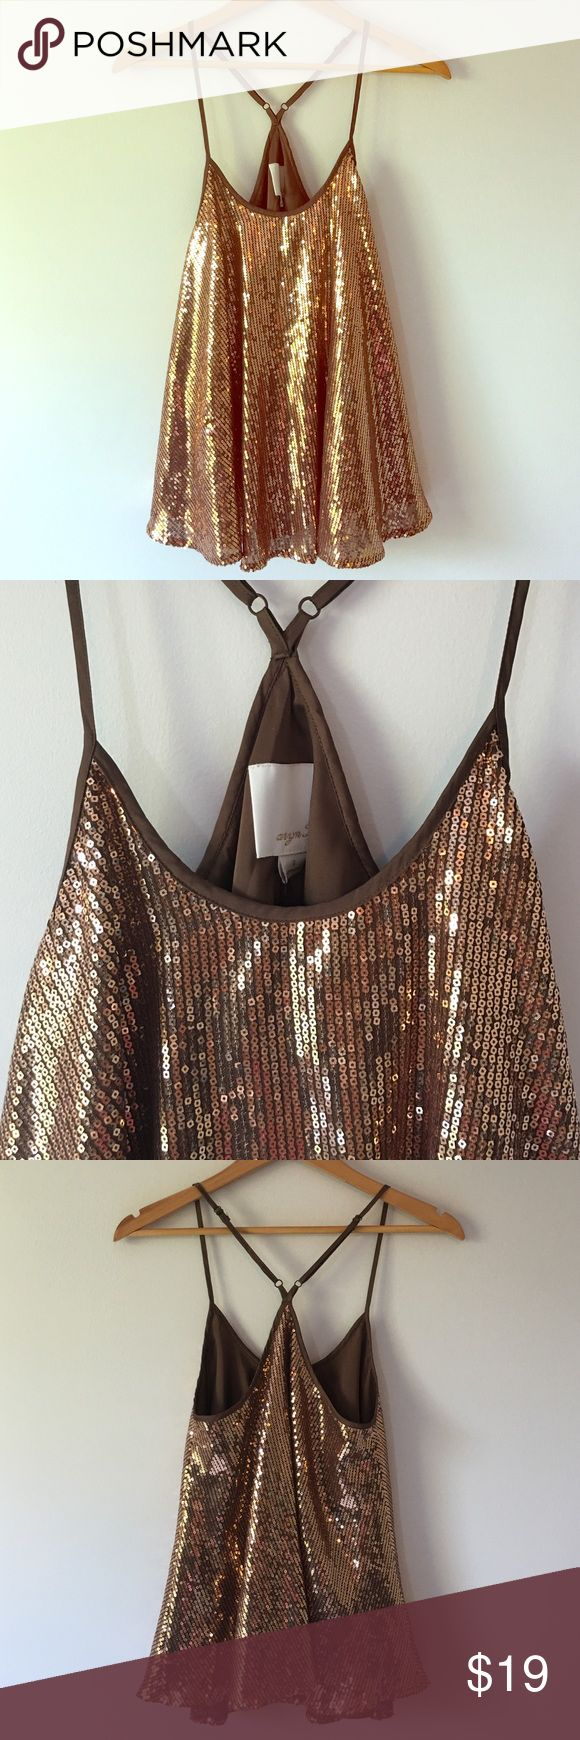 """{Anthropologie Aryn K.} Copper Sequin Swing Tank Anthropologie. Sassy, flowy copper sequin racer back tank. Adjustable straps. Fully lined. Perfectly paired with denim or pencil skirt. 17 1/2"""" pit to pit. 17 1/2"""" long from neckline to bottom of hem. (Two sequins missing in front of top. See example in photo 4.  Reflected in price). Tags attached. Anthropologie Tops Tank Tops"""